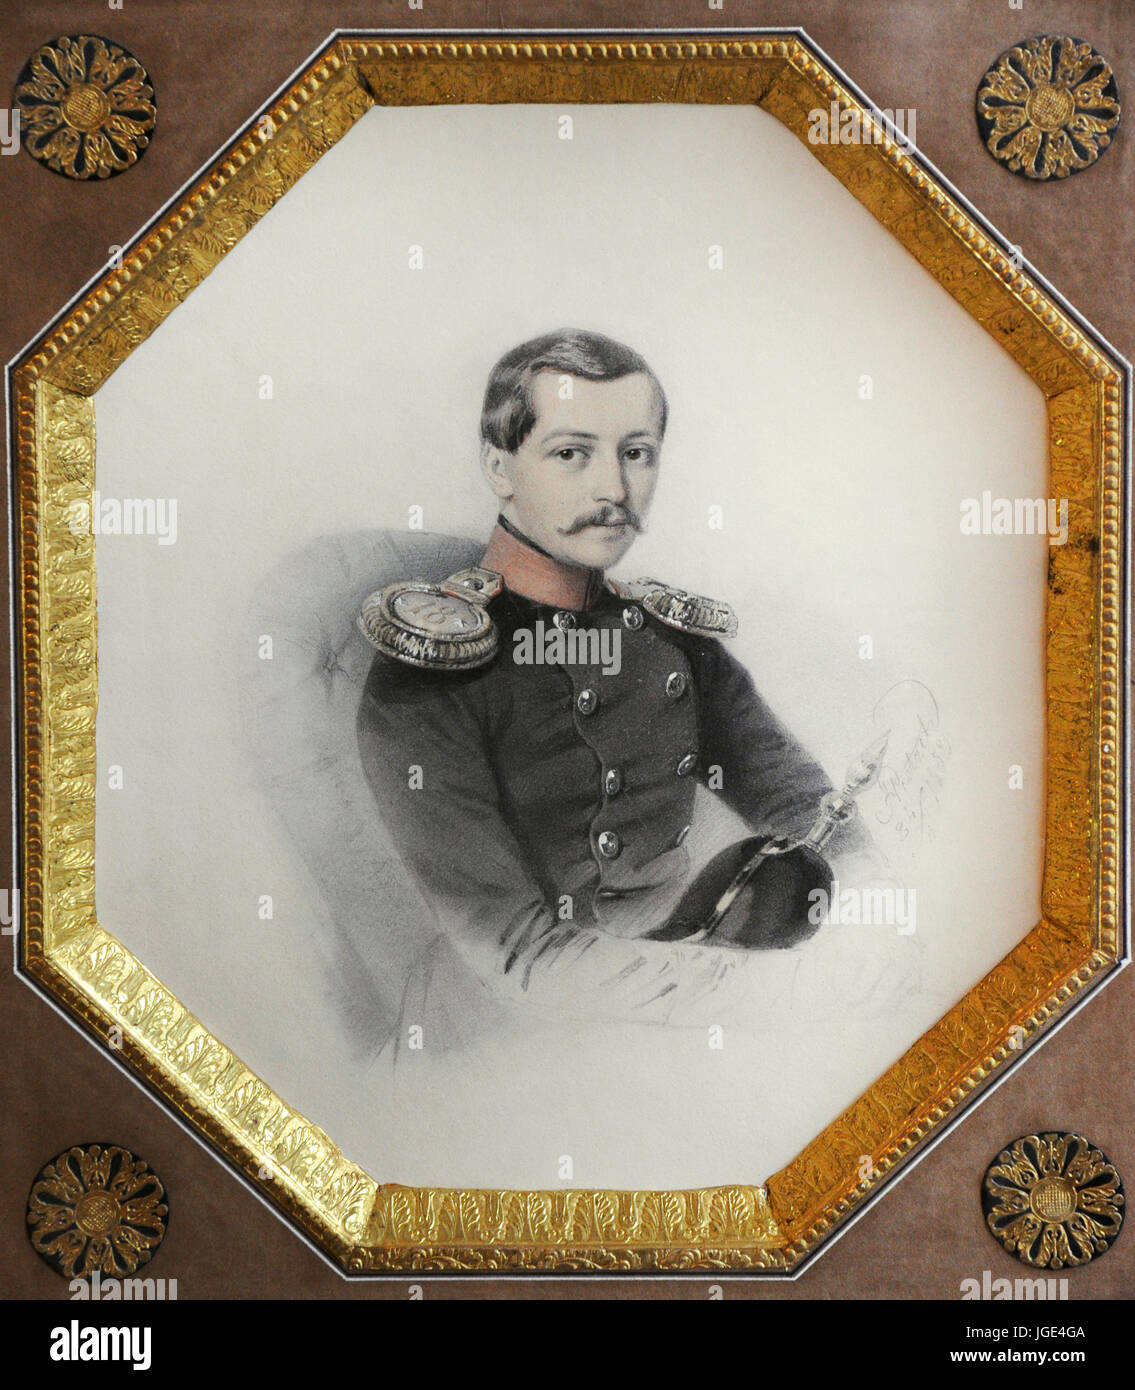 Portrait of an officer, 1852. By H. Pietzch. Vilnius Picture Gallery. Lithuania. - Stock Image